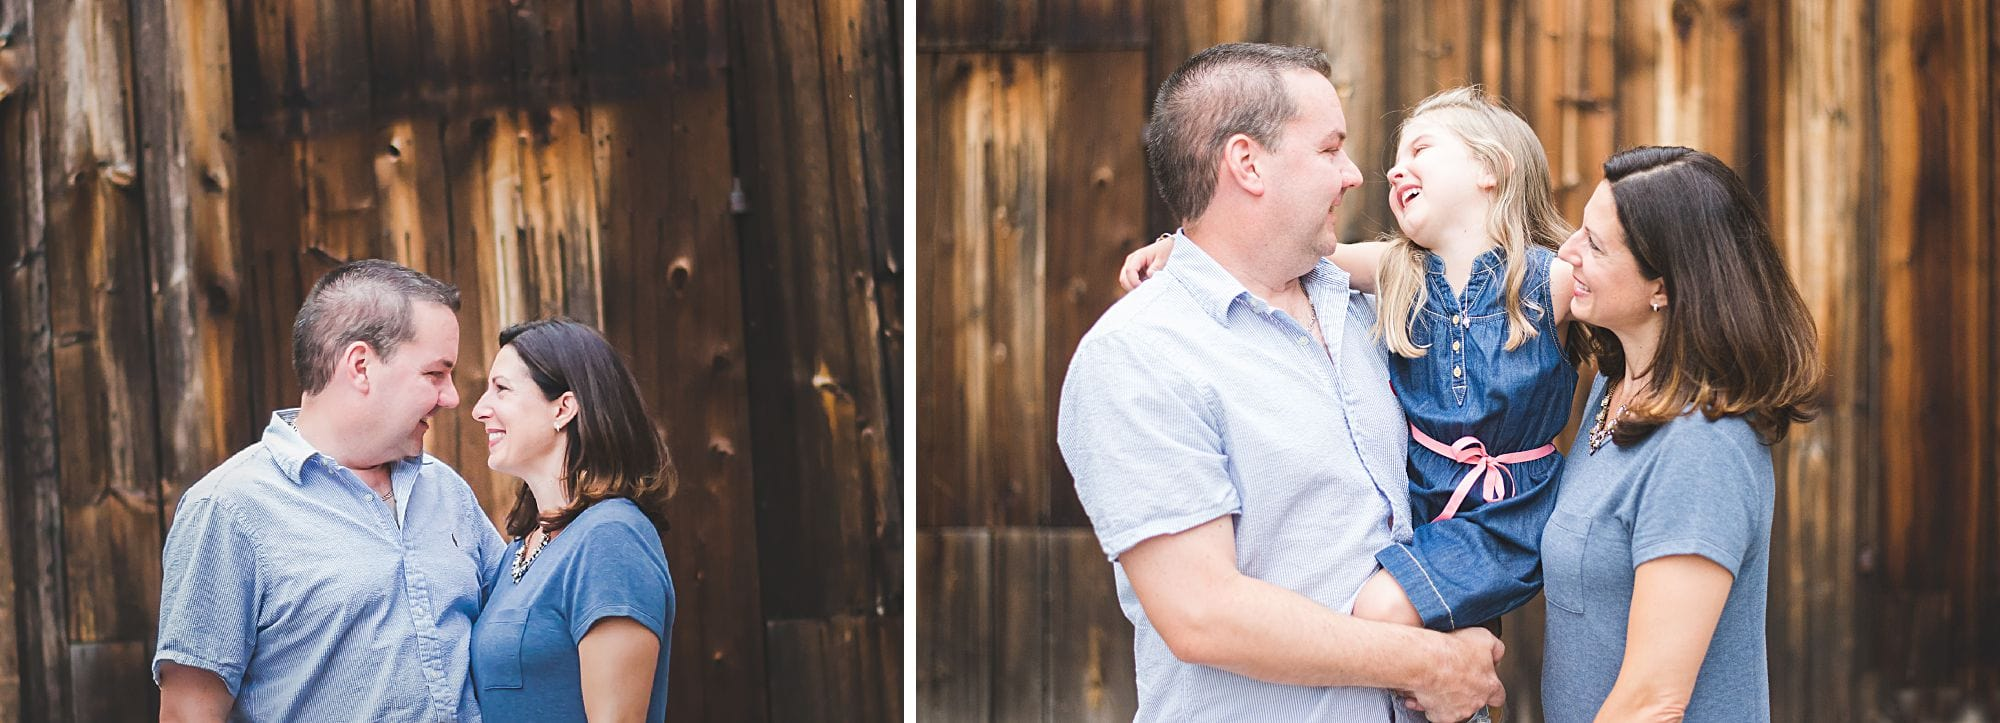 Collage of family portrait and couple portrait against wood background, in casual embrace poses